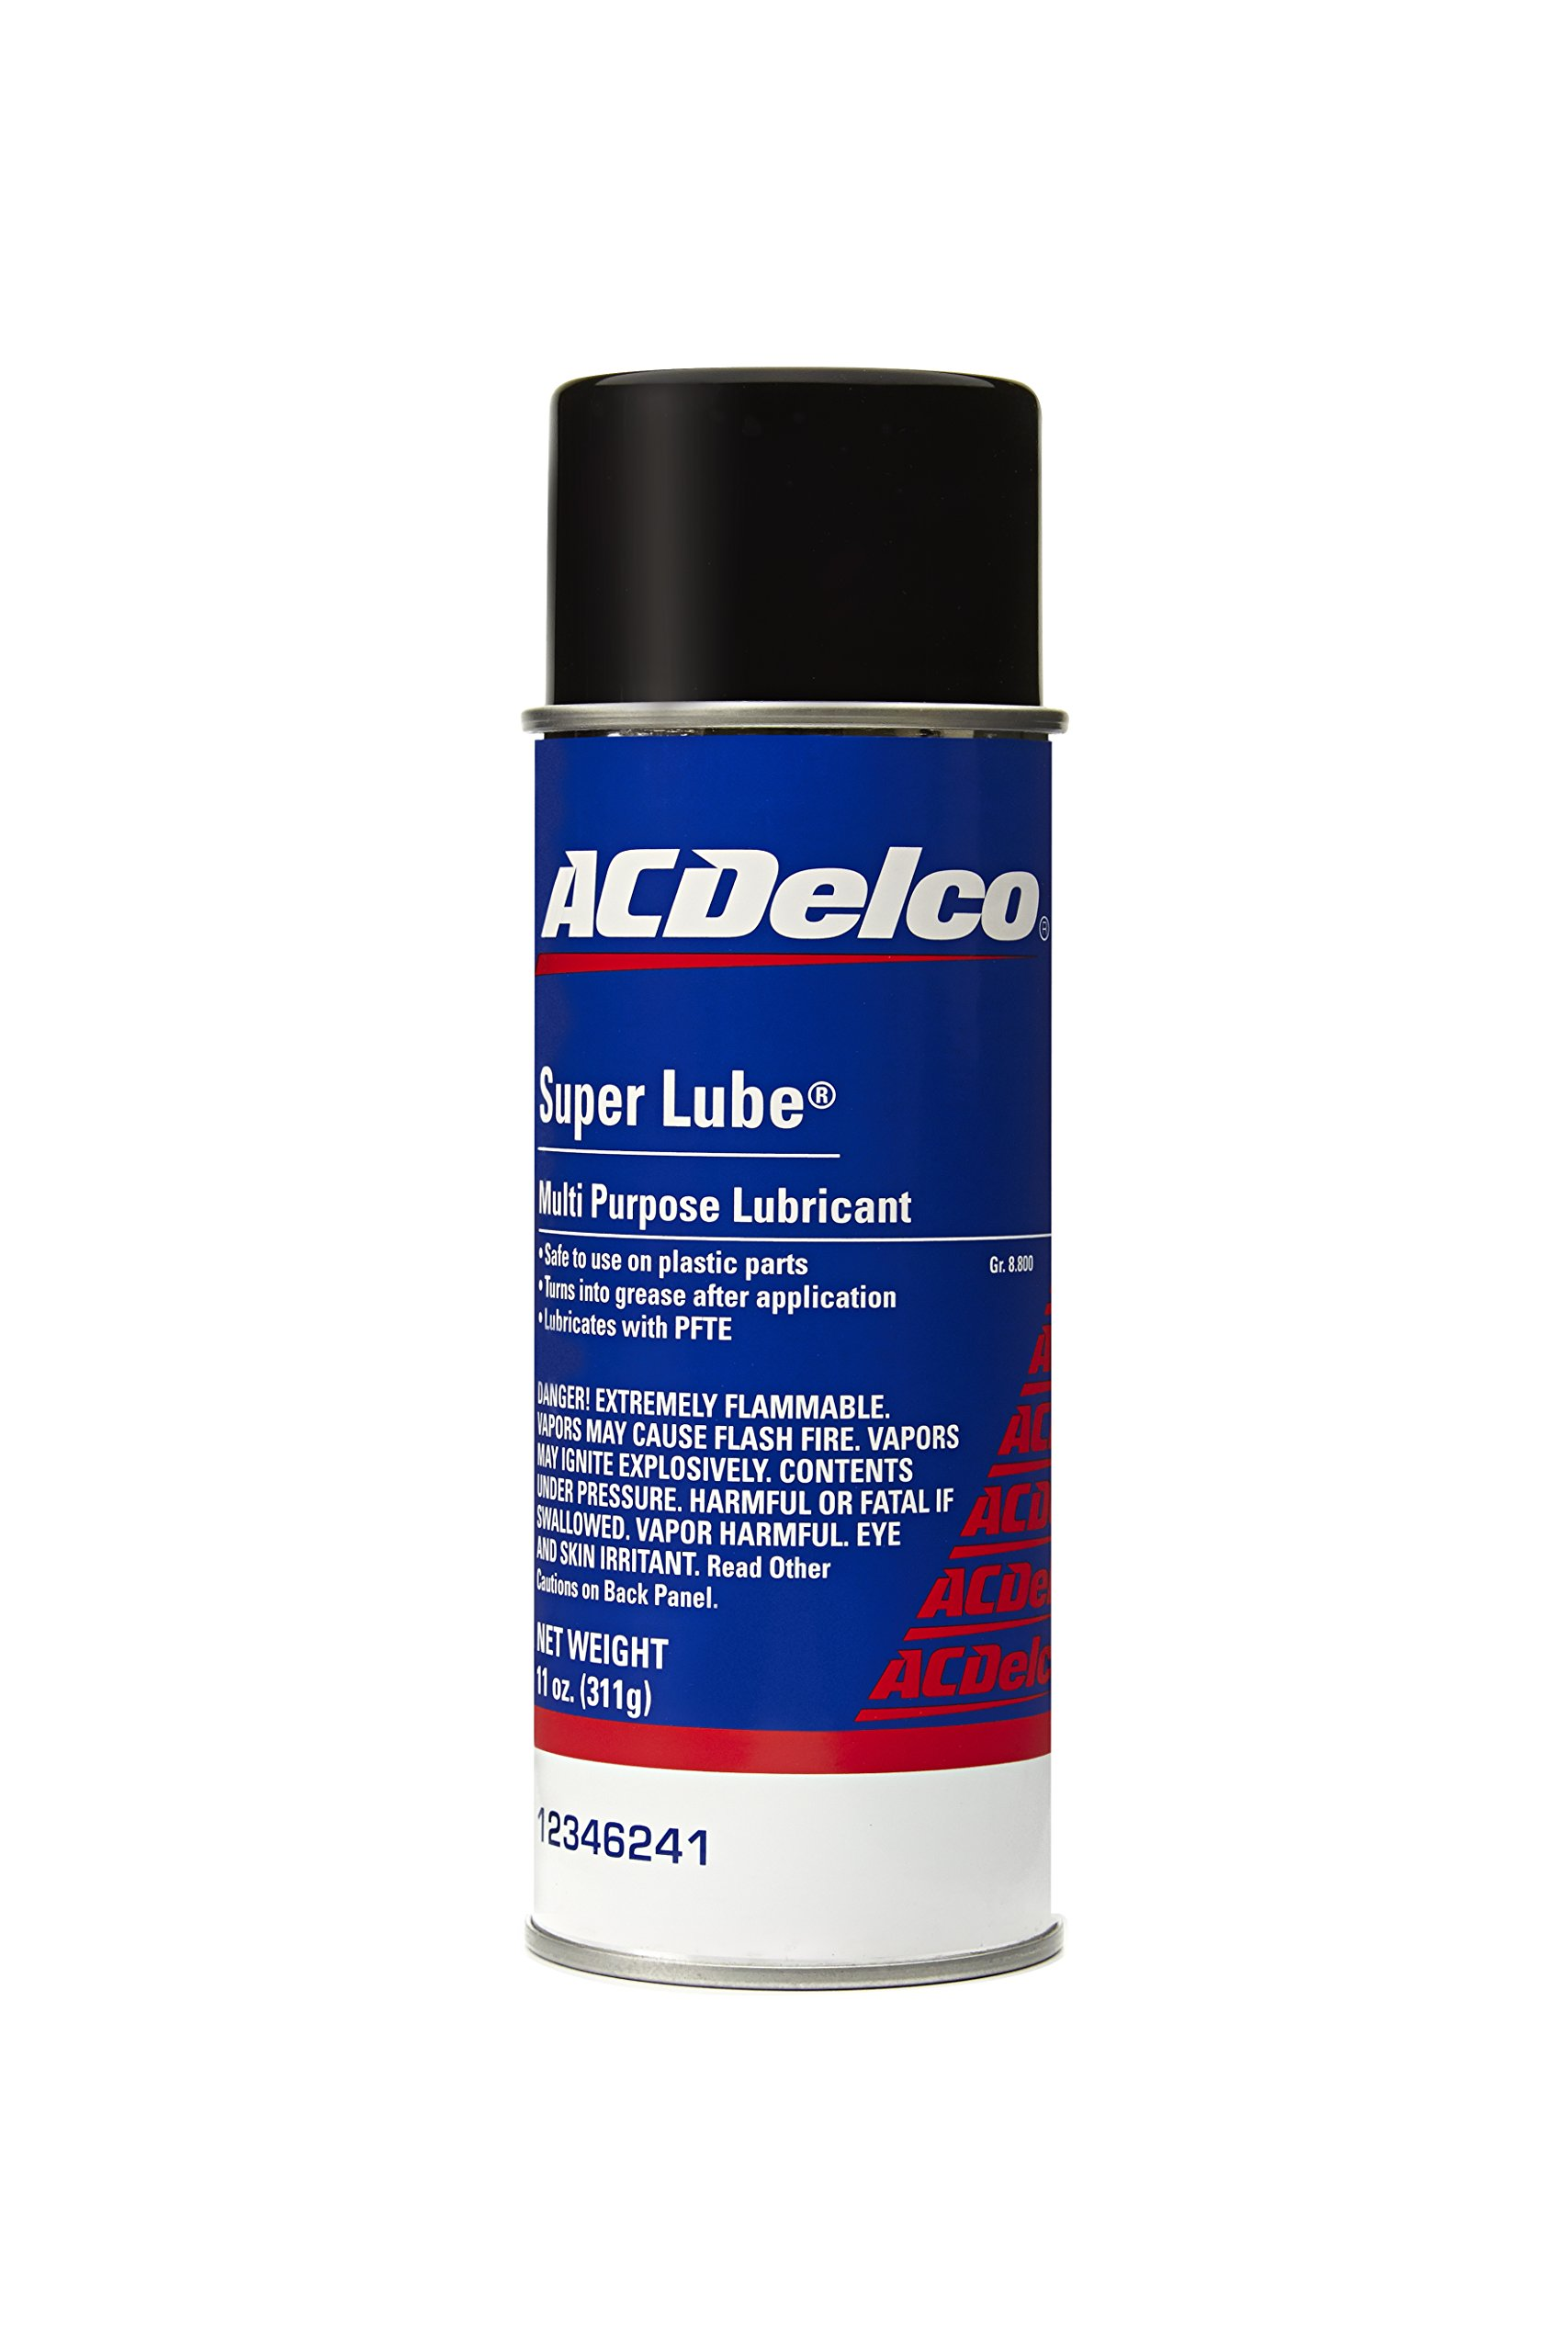 ACDelco 12346241 Synthetic Multi-Purpose Glycol Lubricant - 11 oz Spray